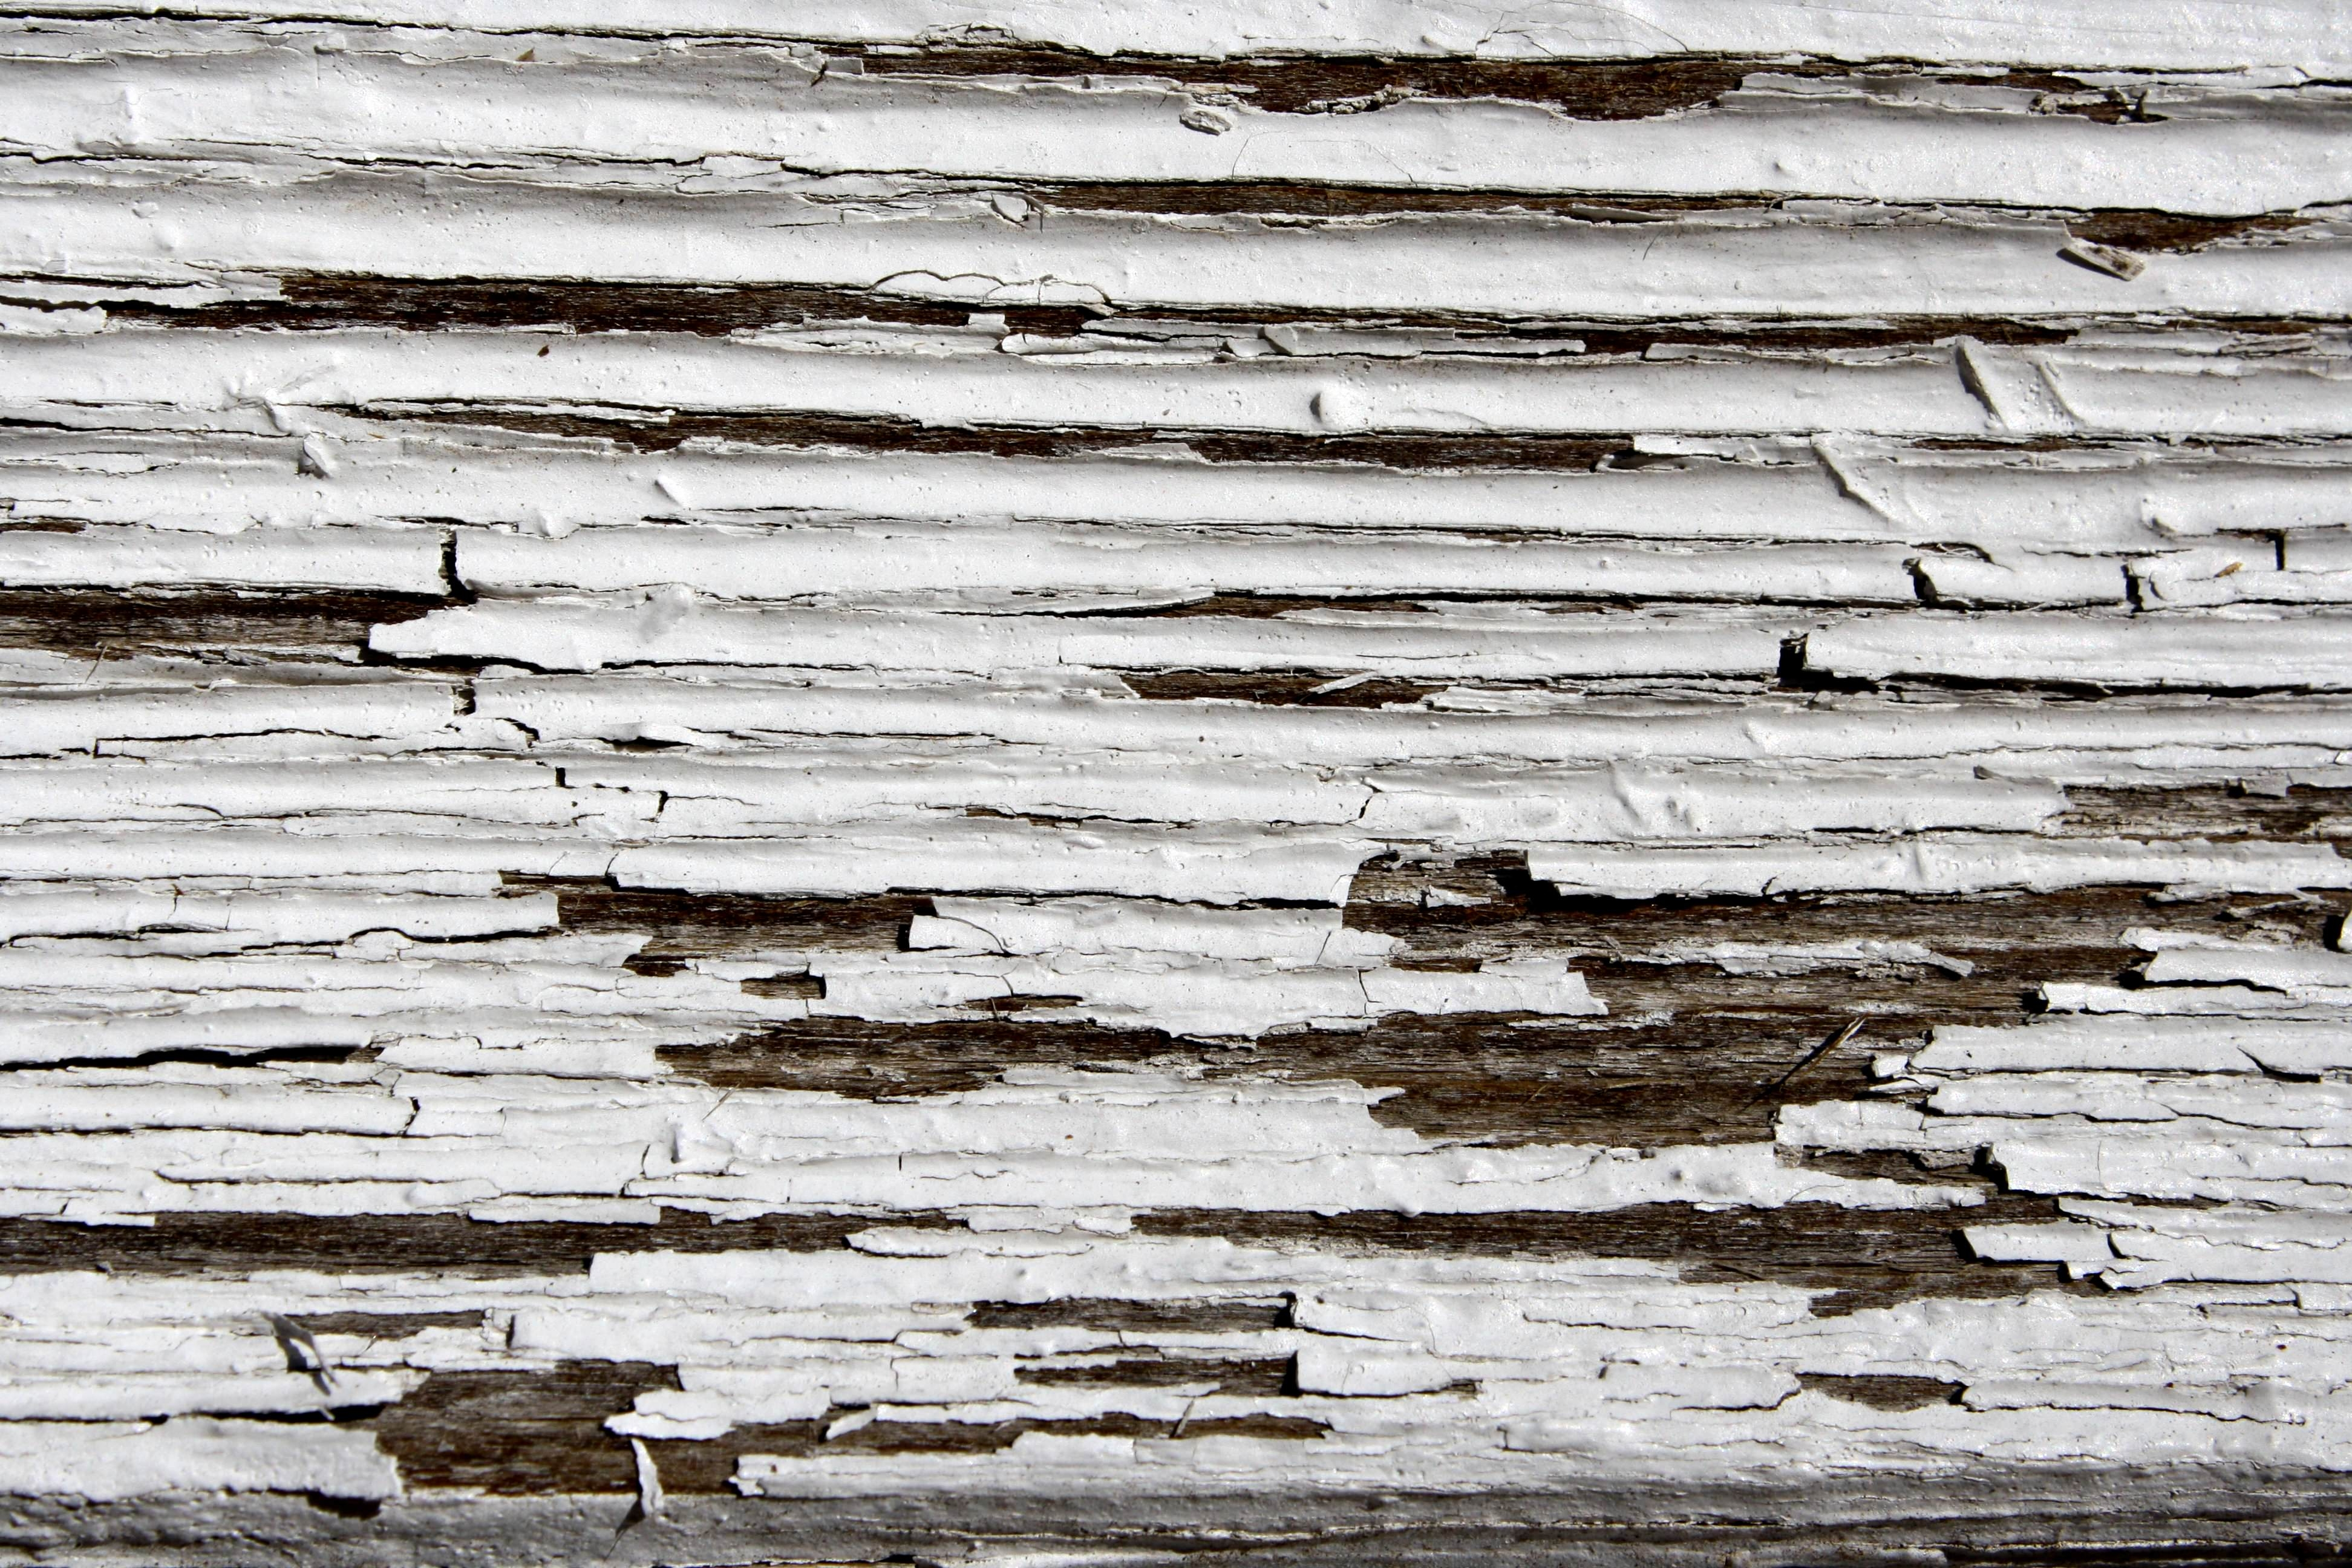 Peeling Wood Textures For Free Download